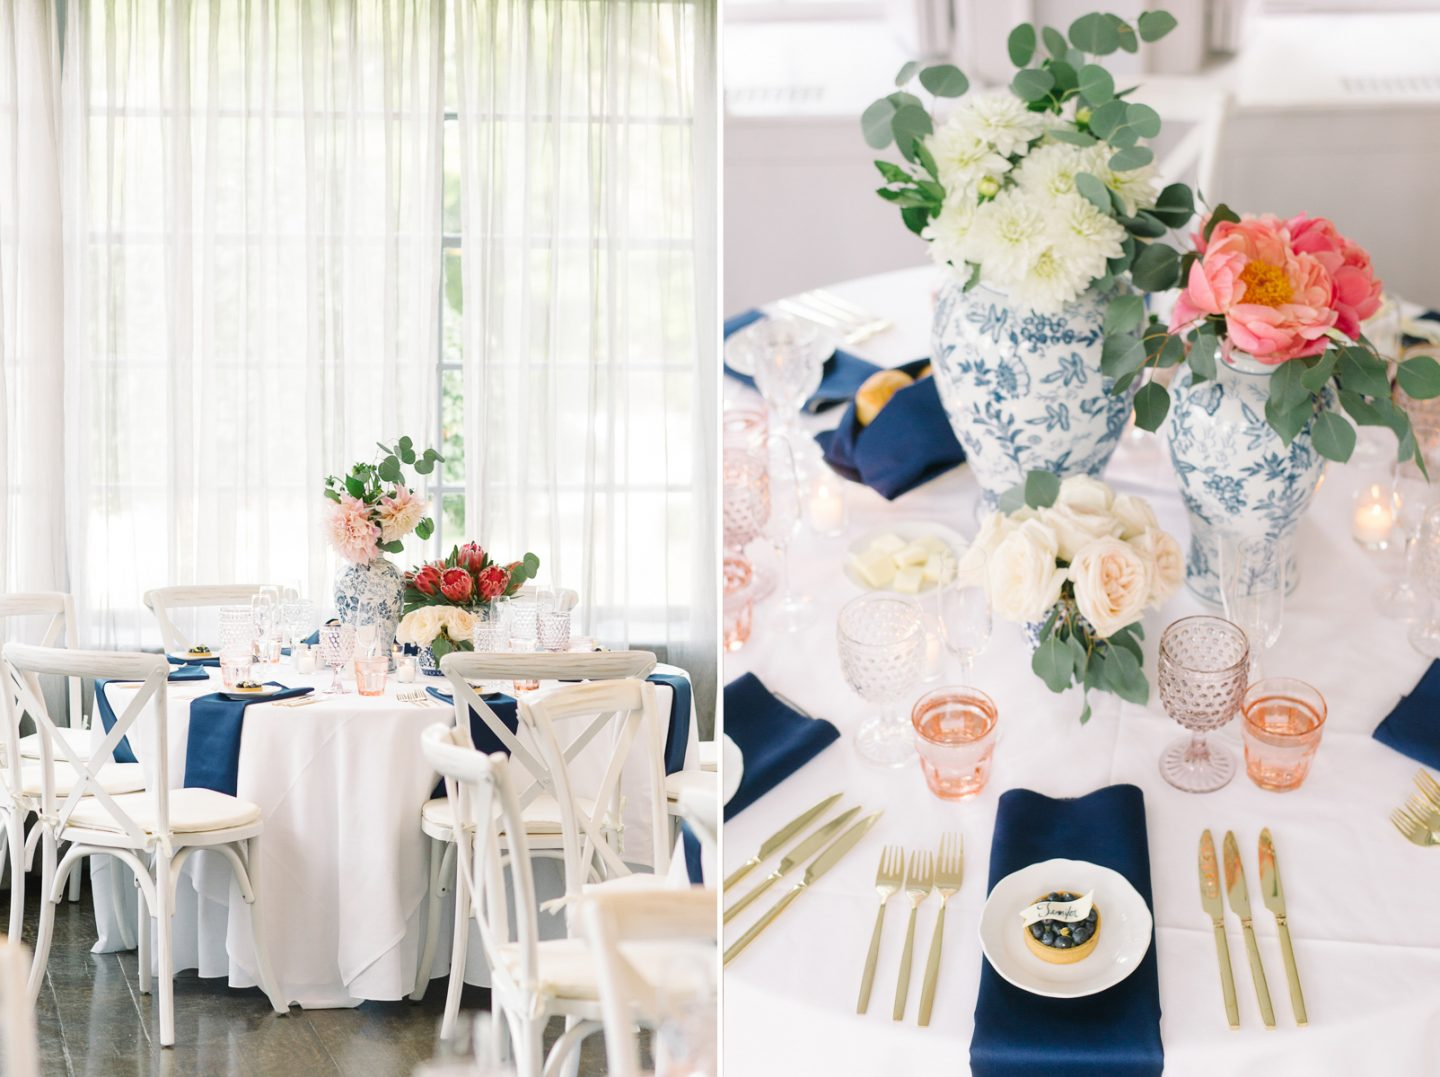 tara-mcmullen-photography-barb-simkova-mclean-house-wedding-estates-of-sunnybrook-wedding-shealyn-angus-wedding-blush-and-bloom-wedding-024